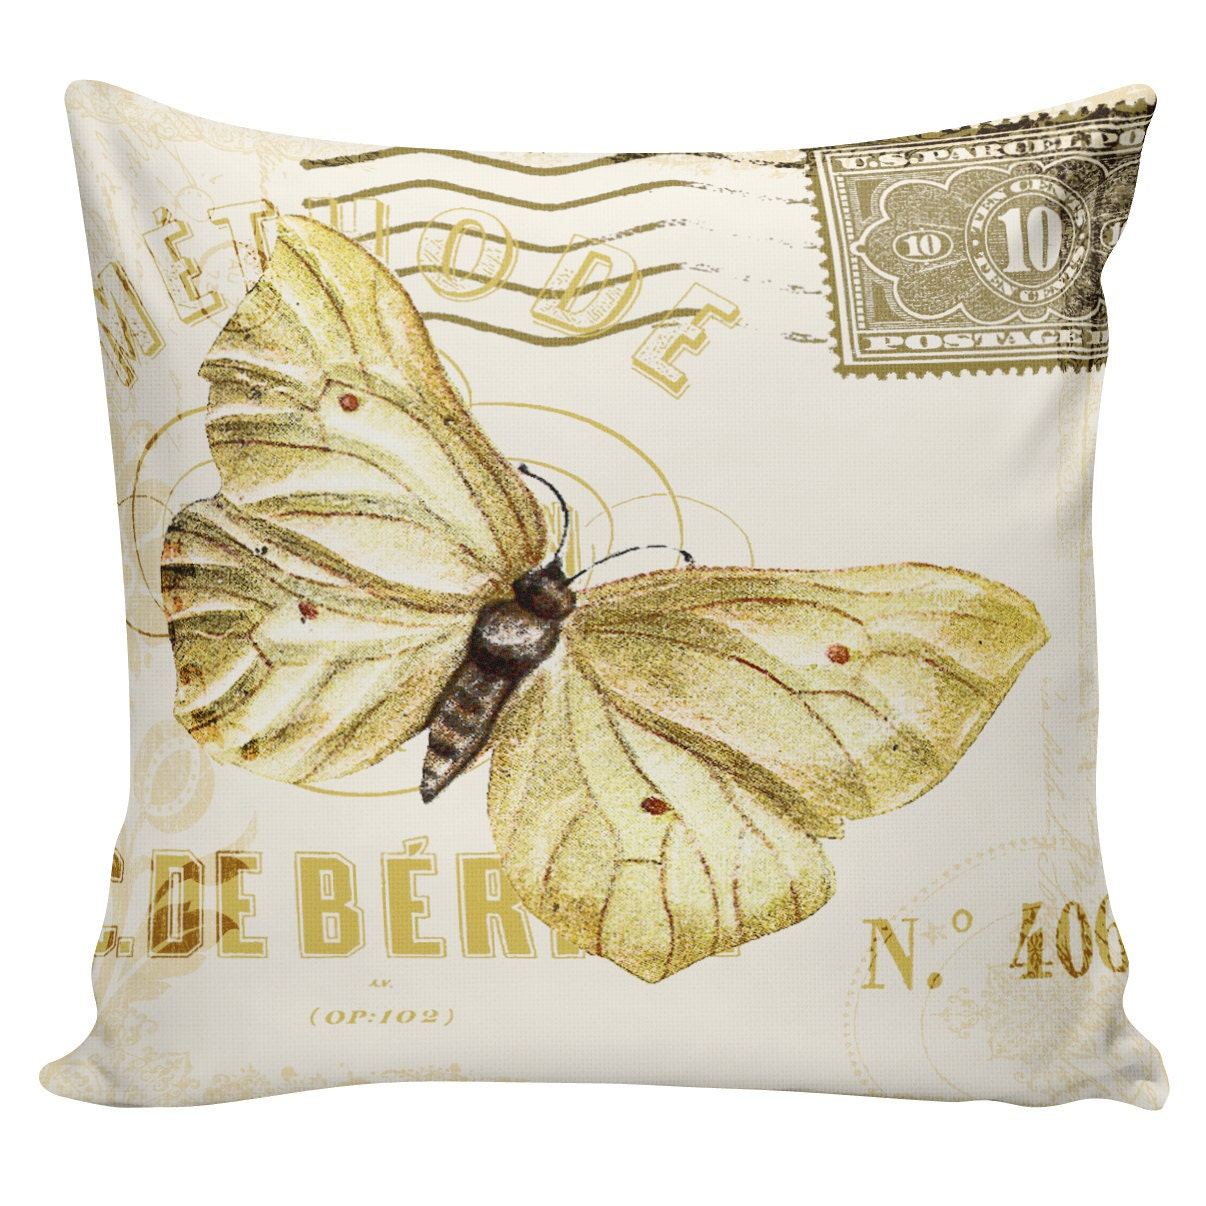 Canadian Inspired Home Decor Canada Pillow Via Etsy: Home Decor Pillow Cushion Spring Butterfly French Floral